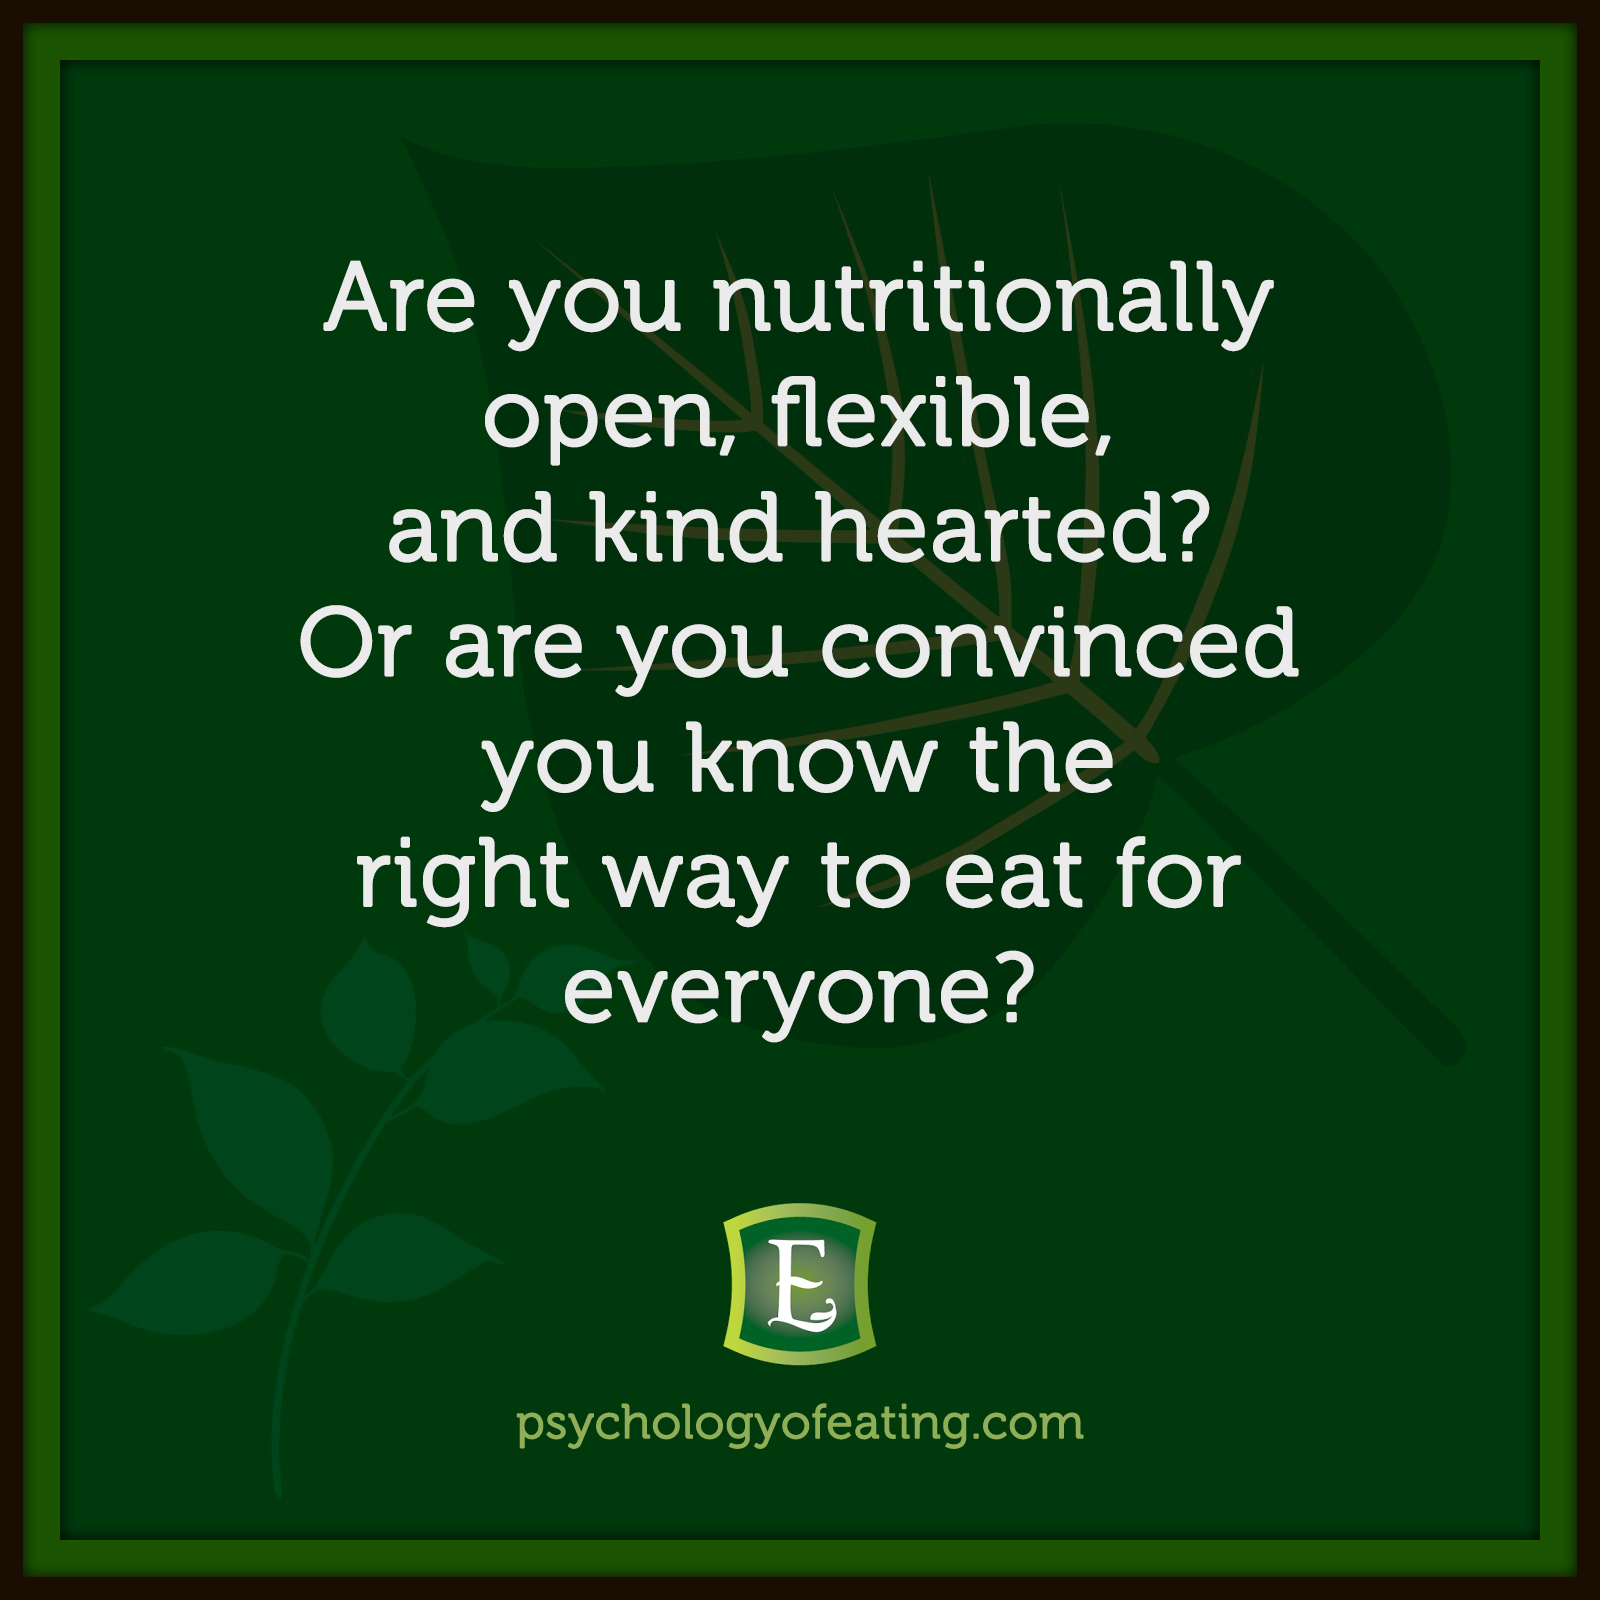 Are you nutritionally open, flexible, and kind hearted? Or are you convinced you know the right way to eat for everyone? #health #nutrition #eatingpsychology #IPE